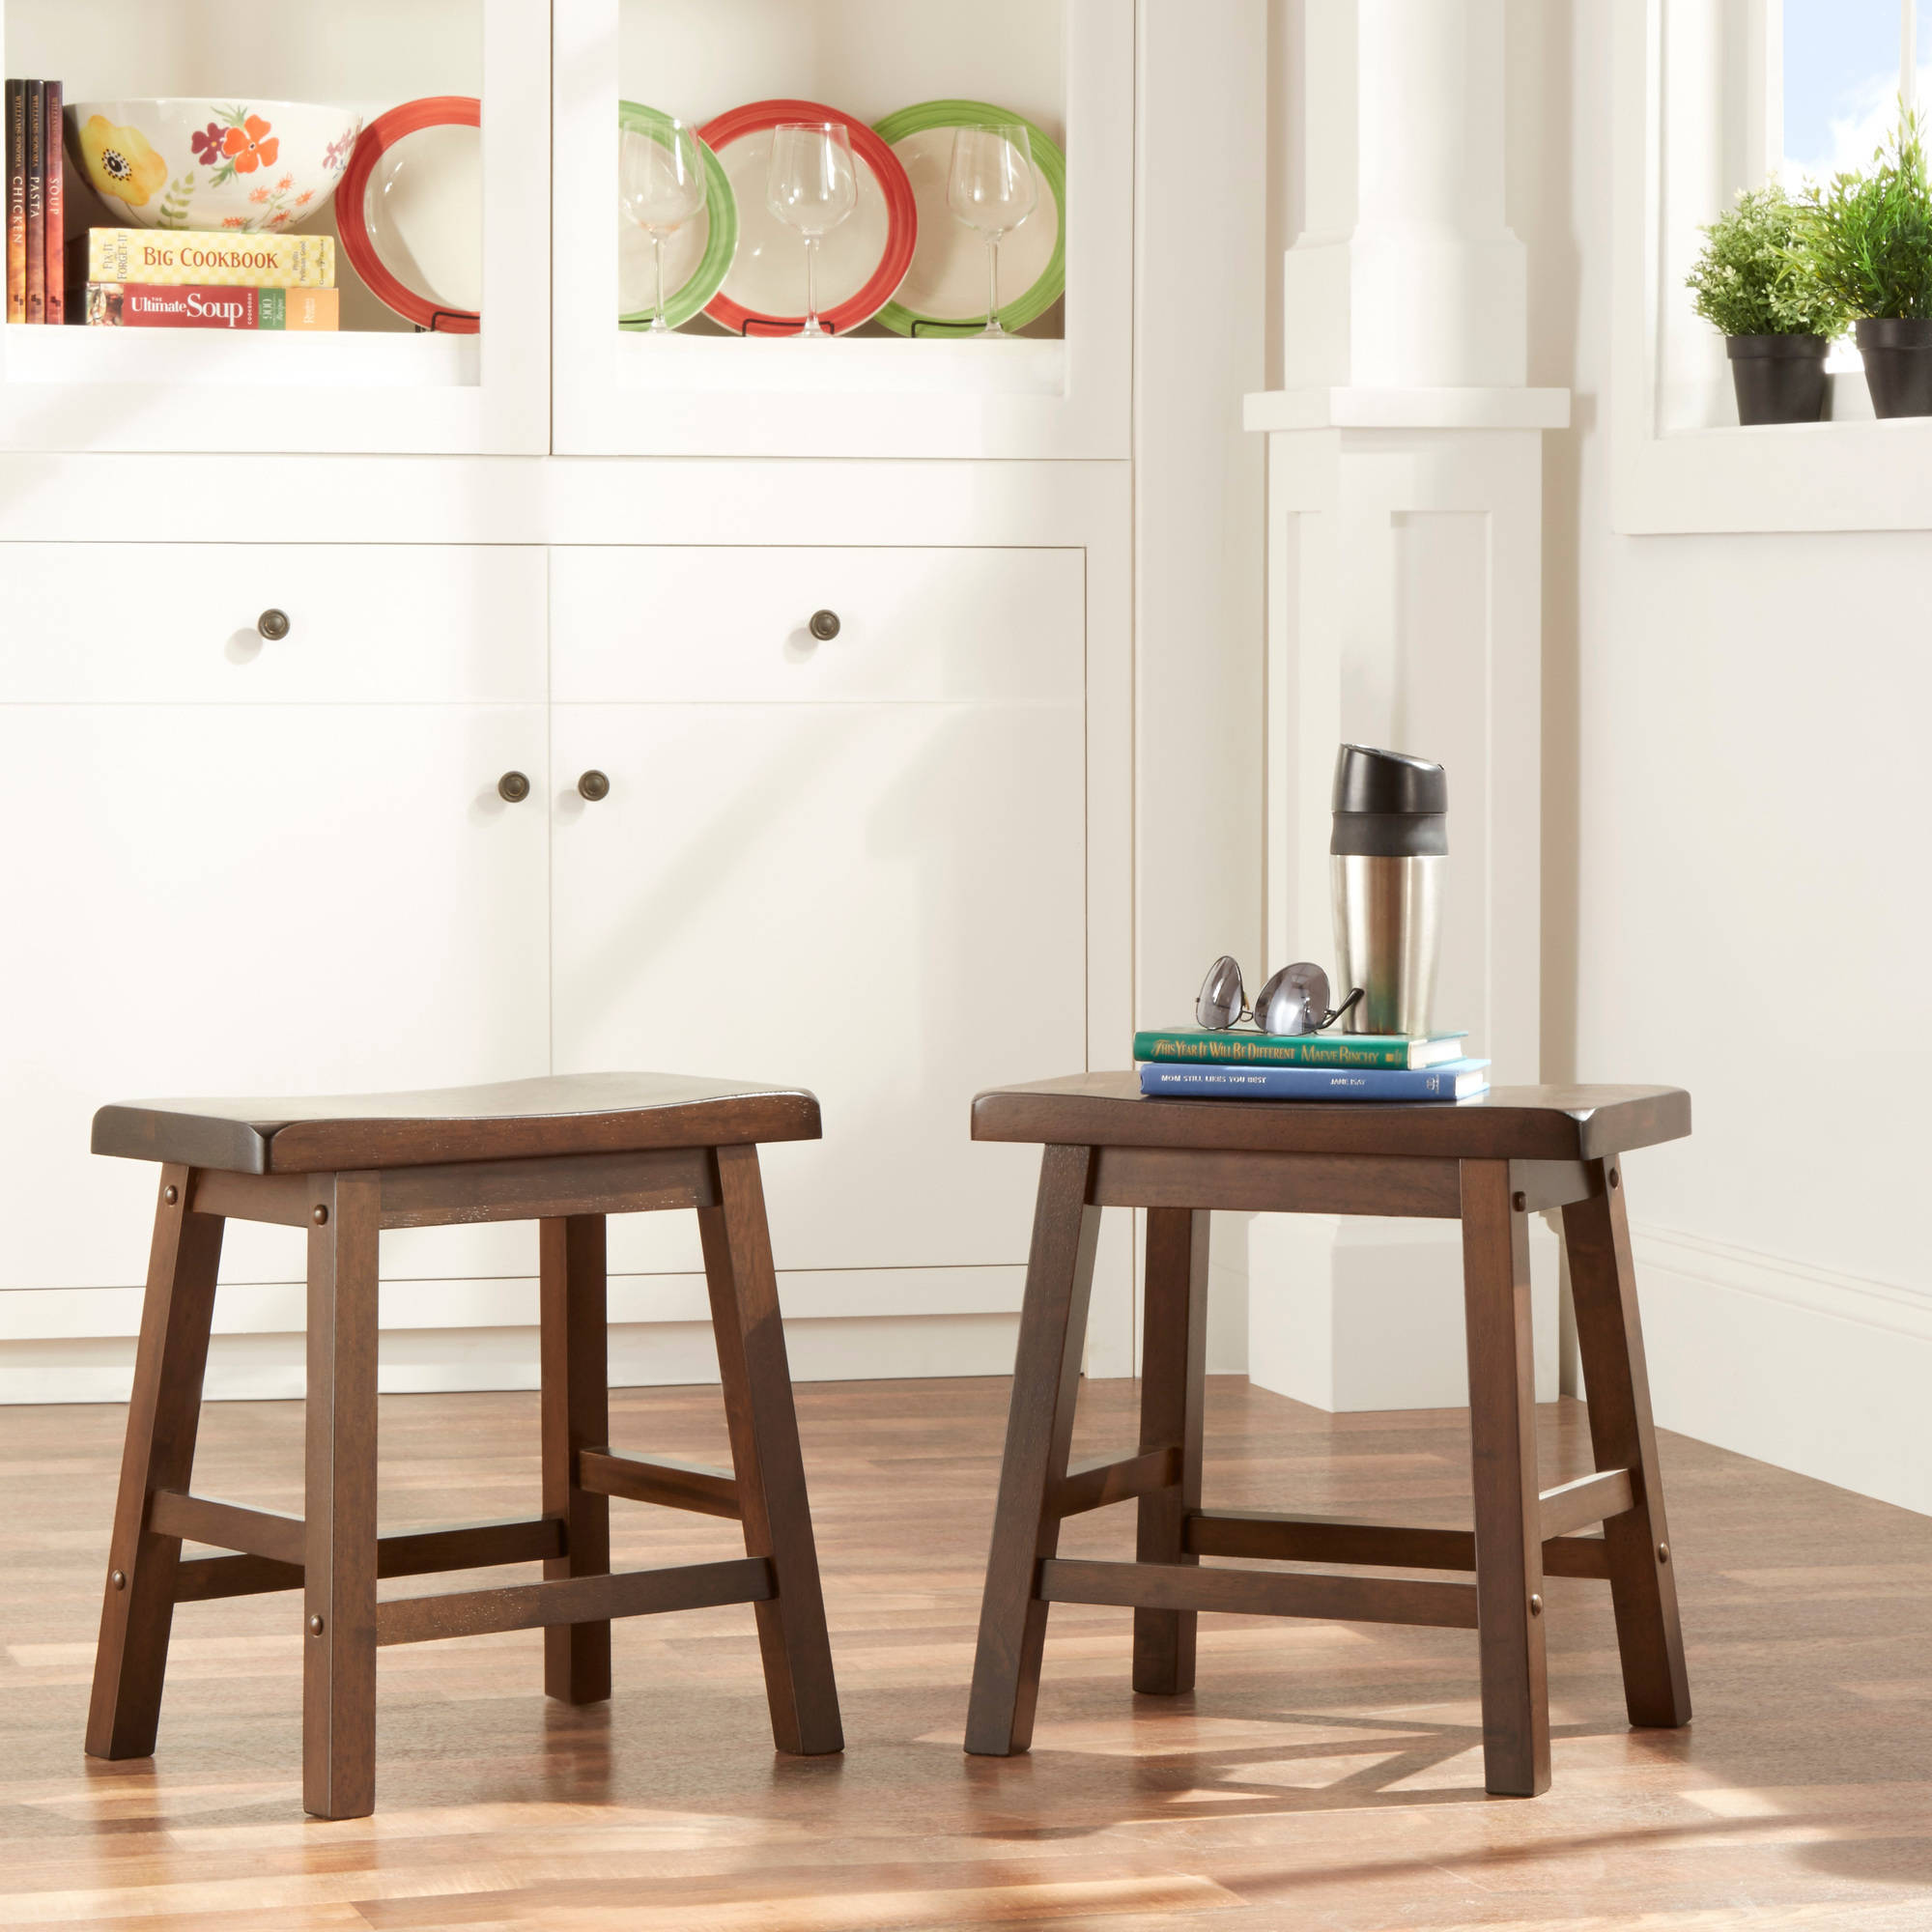 Ashby Kitchen Stools 18'', Set of 2, Walnut